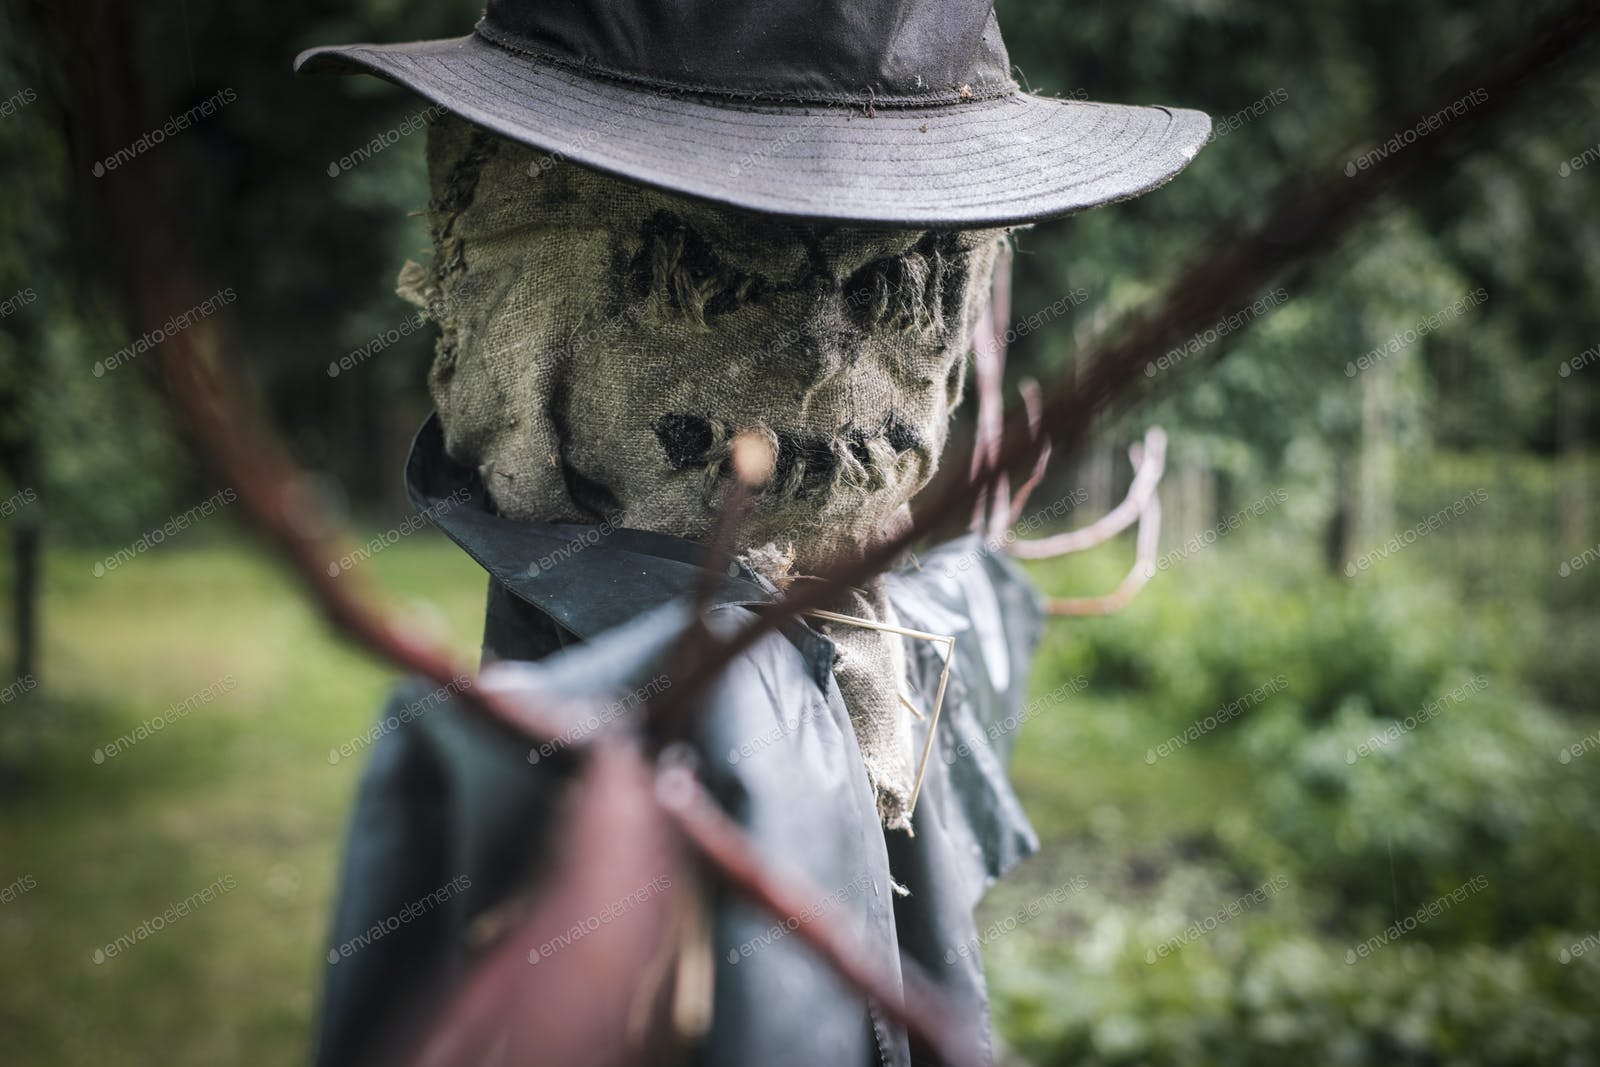 Scary scarecrow in a hat photo by ivankmit on Envato Elements